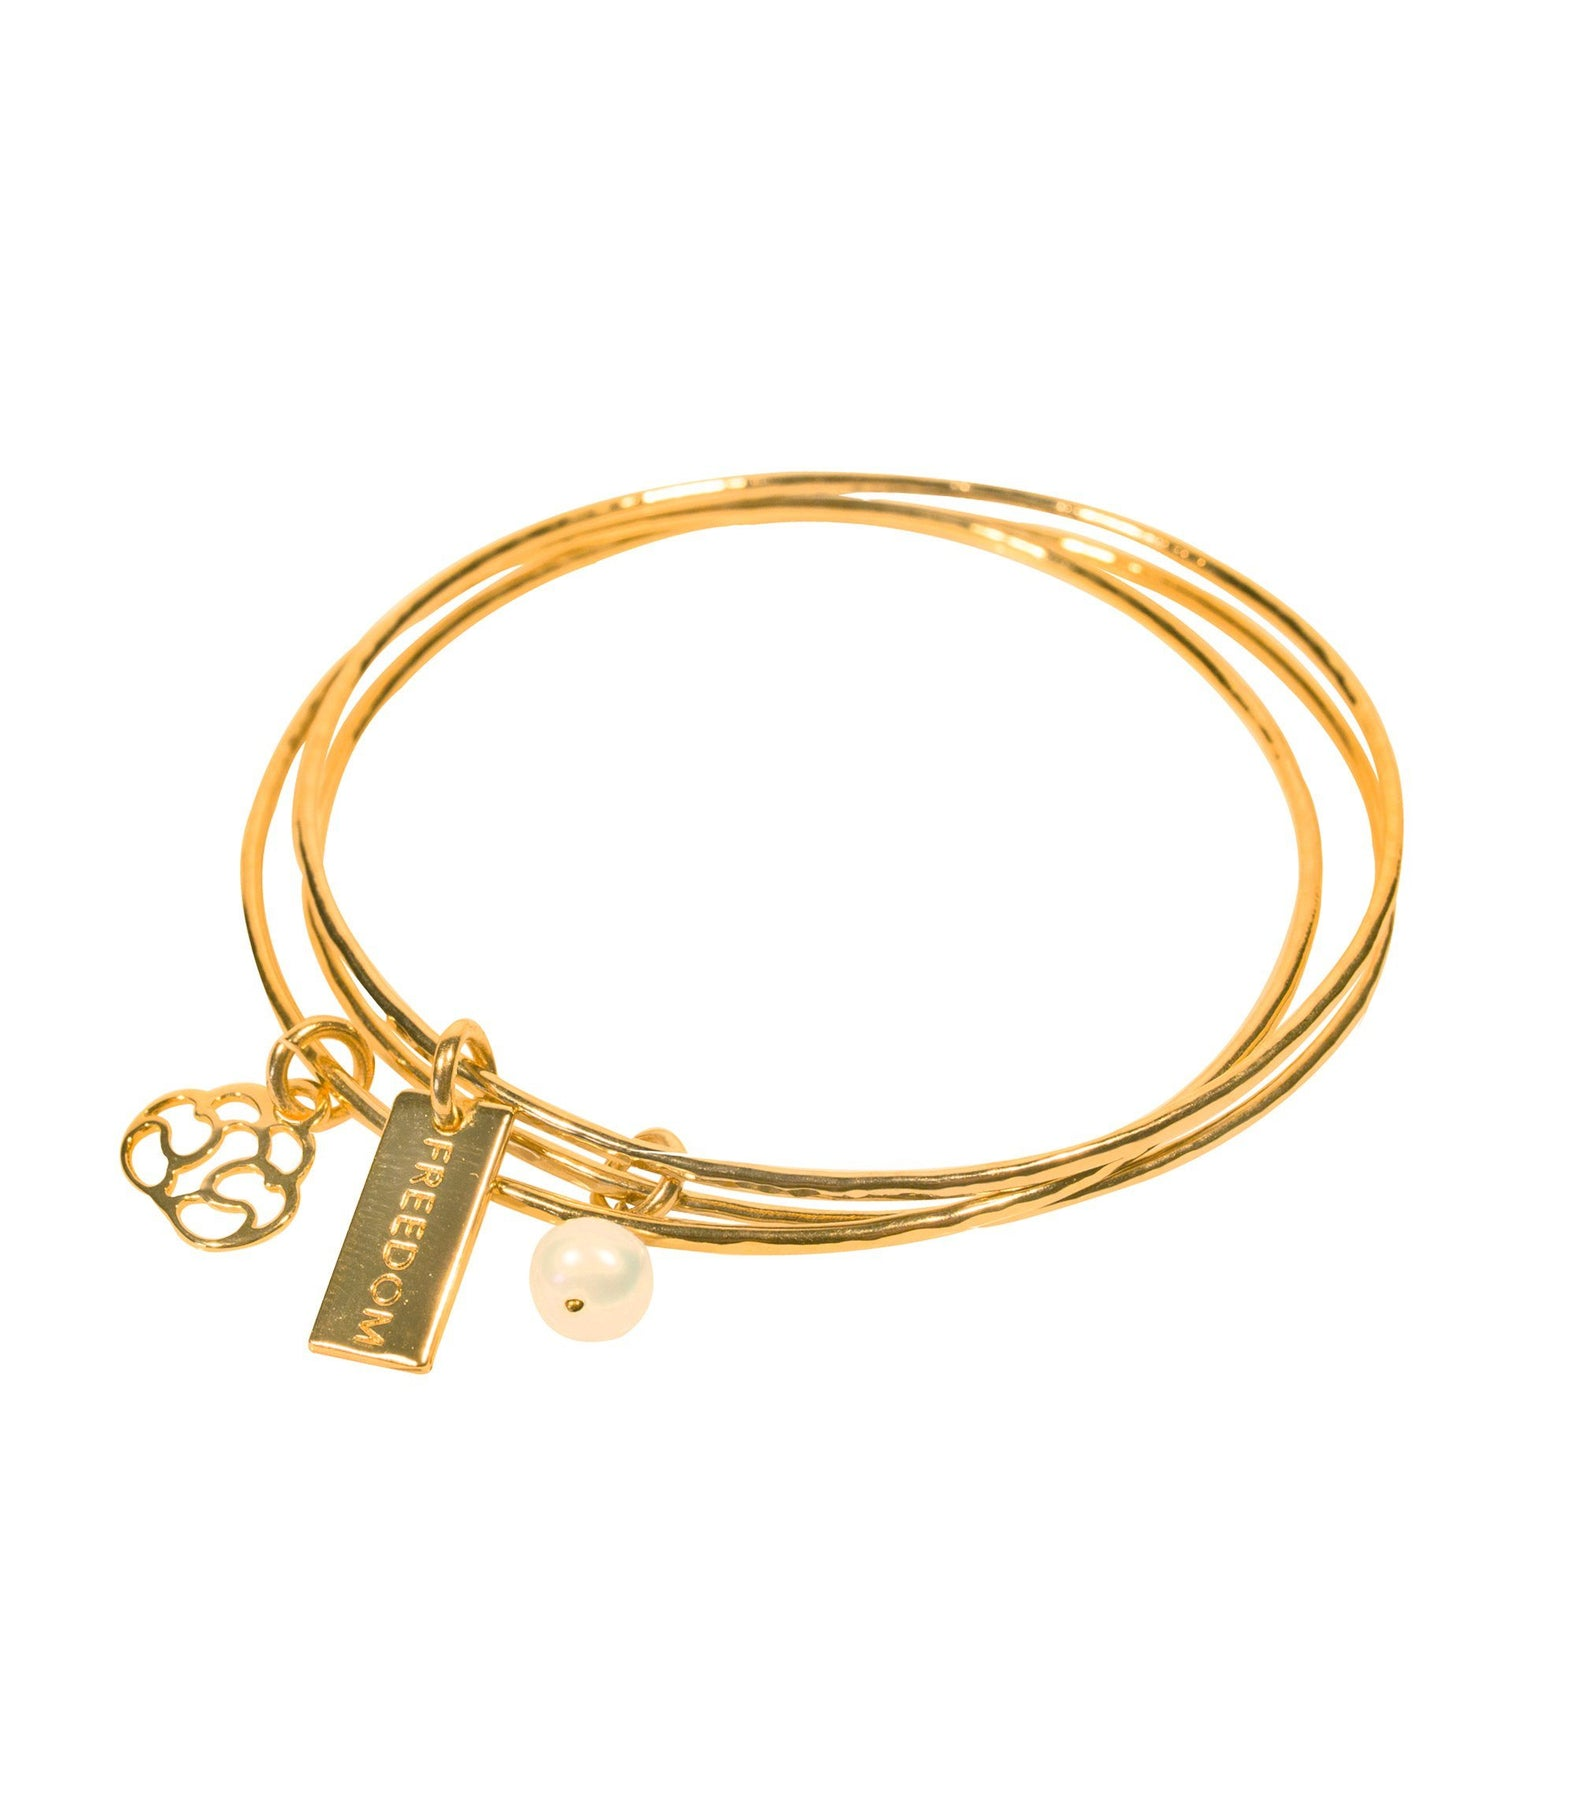 bebe products blonde hindi bracelet tunique monsieur sparkle